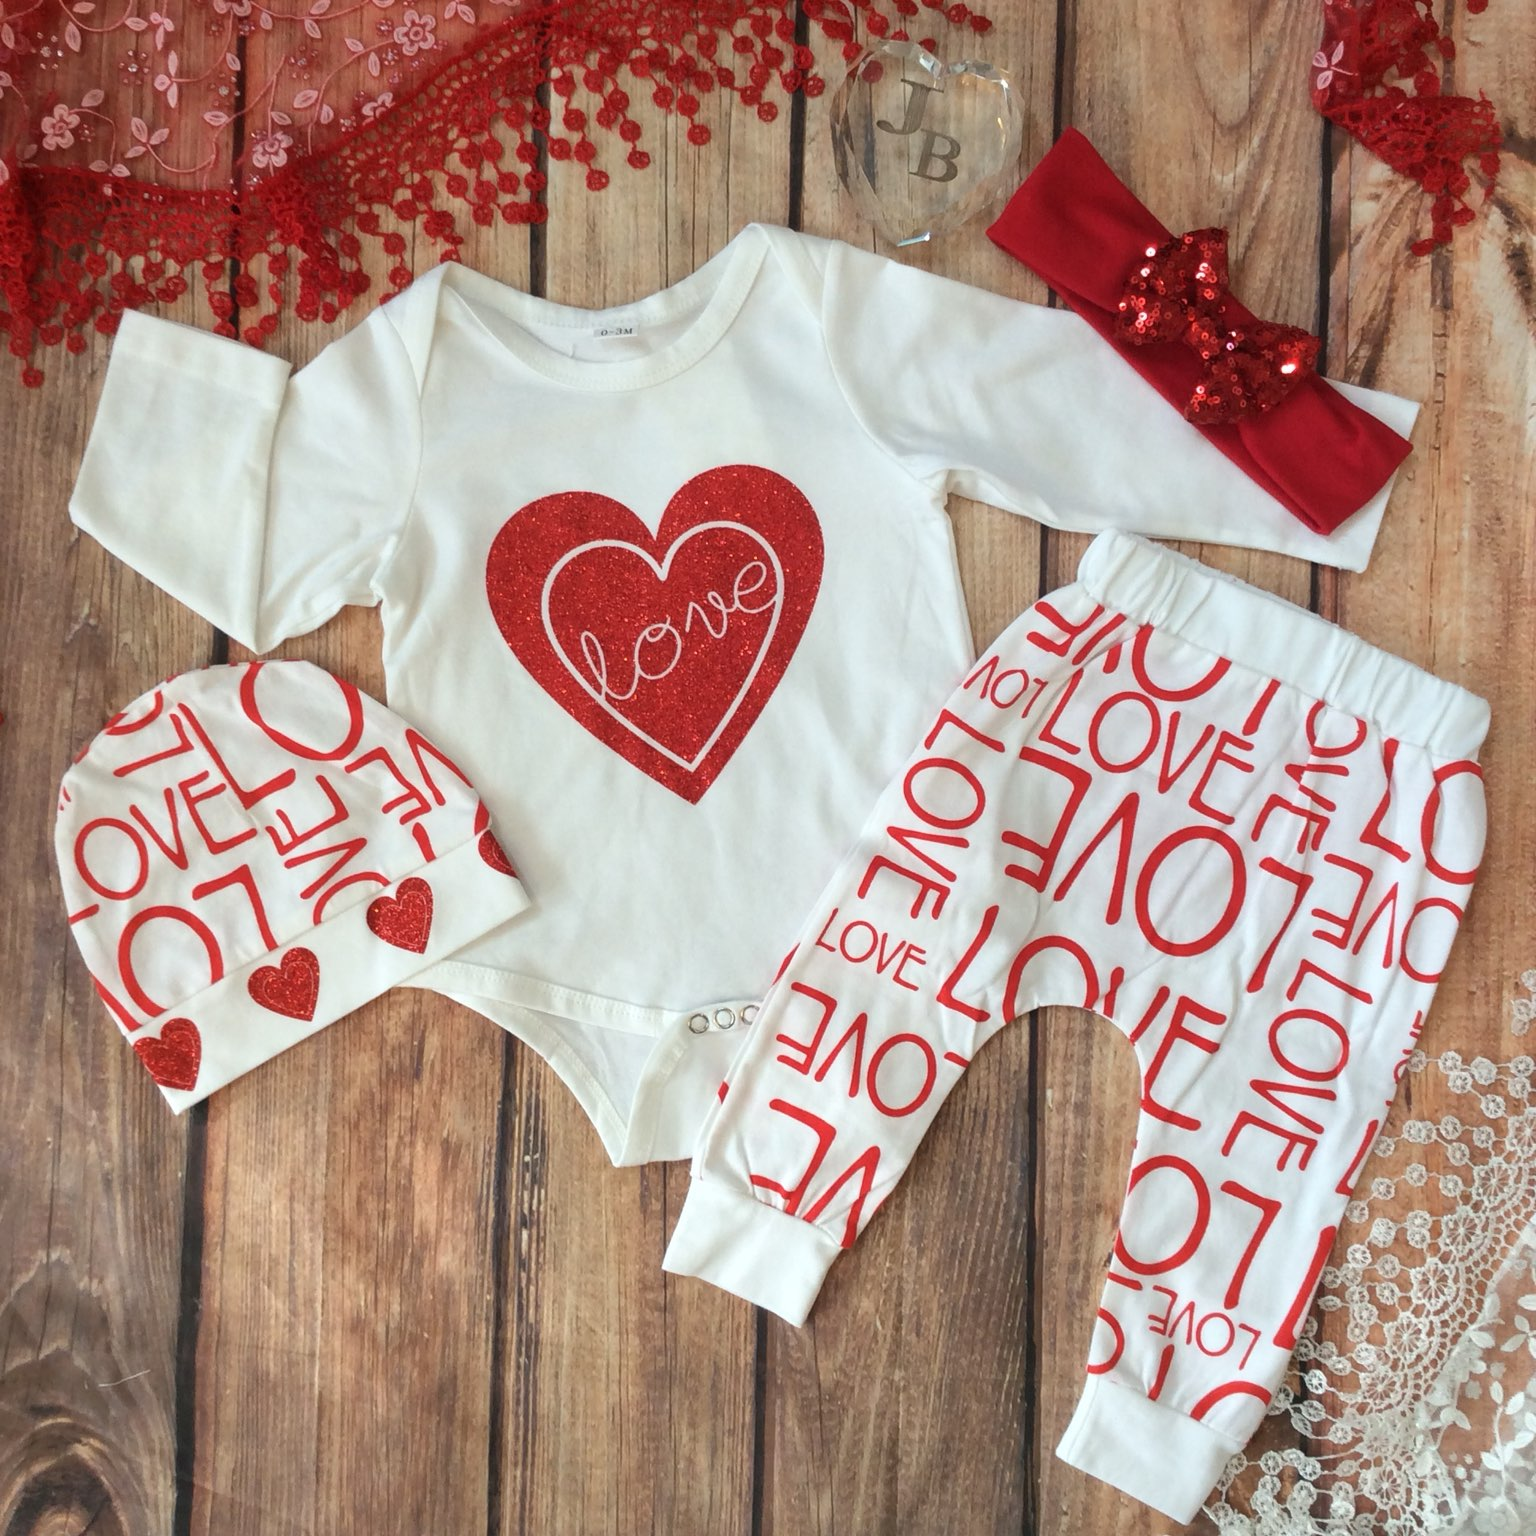 12 18 mos baby valentines day outfit 4pc - Infant Valentines Day Outfits